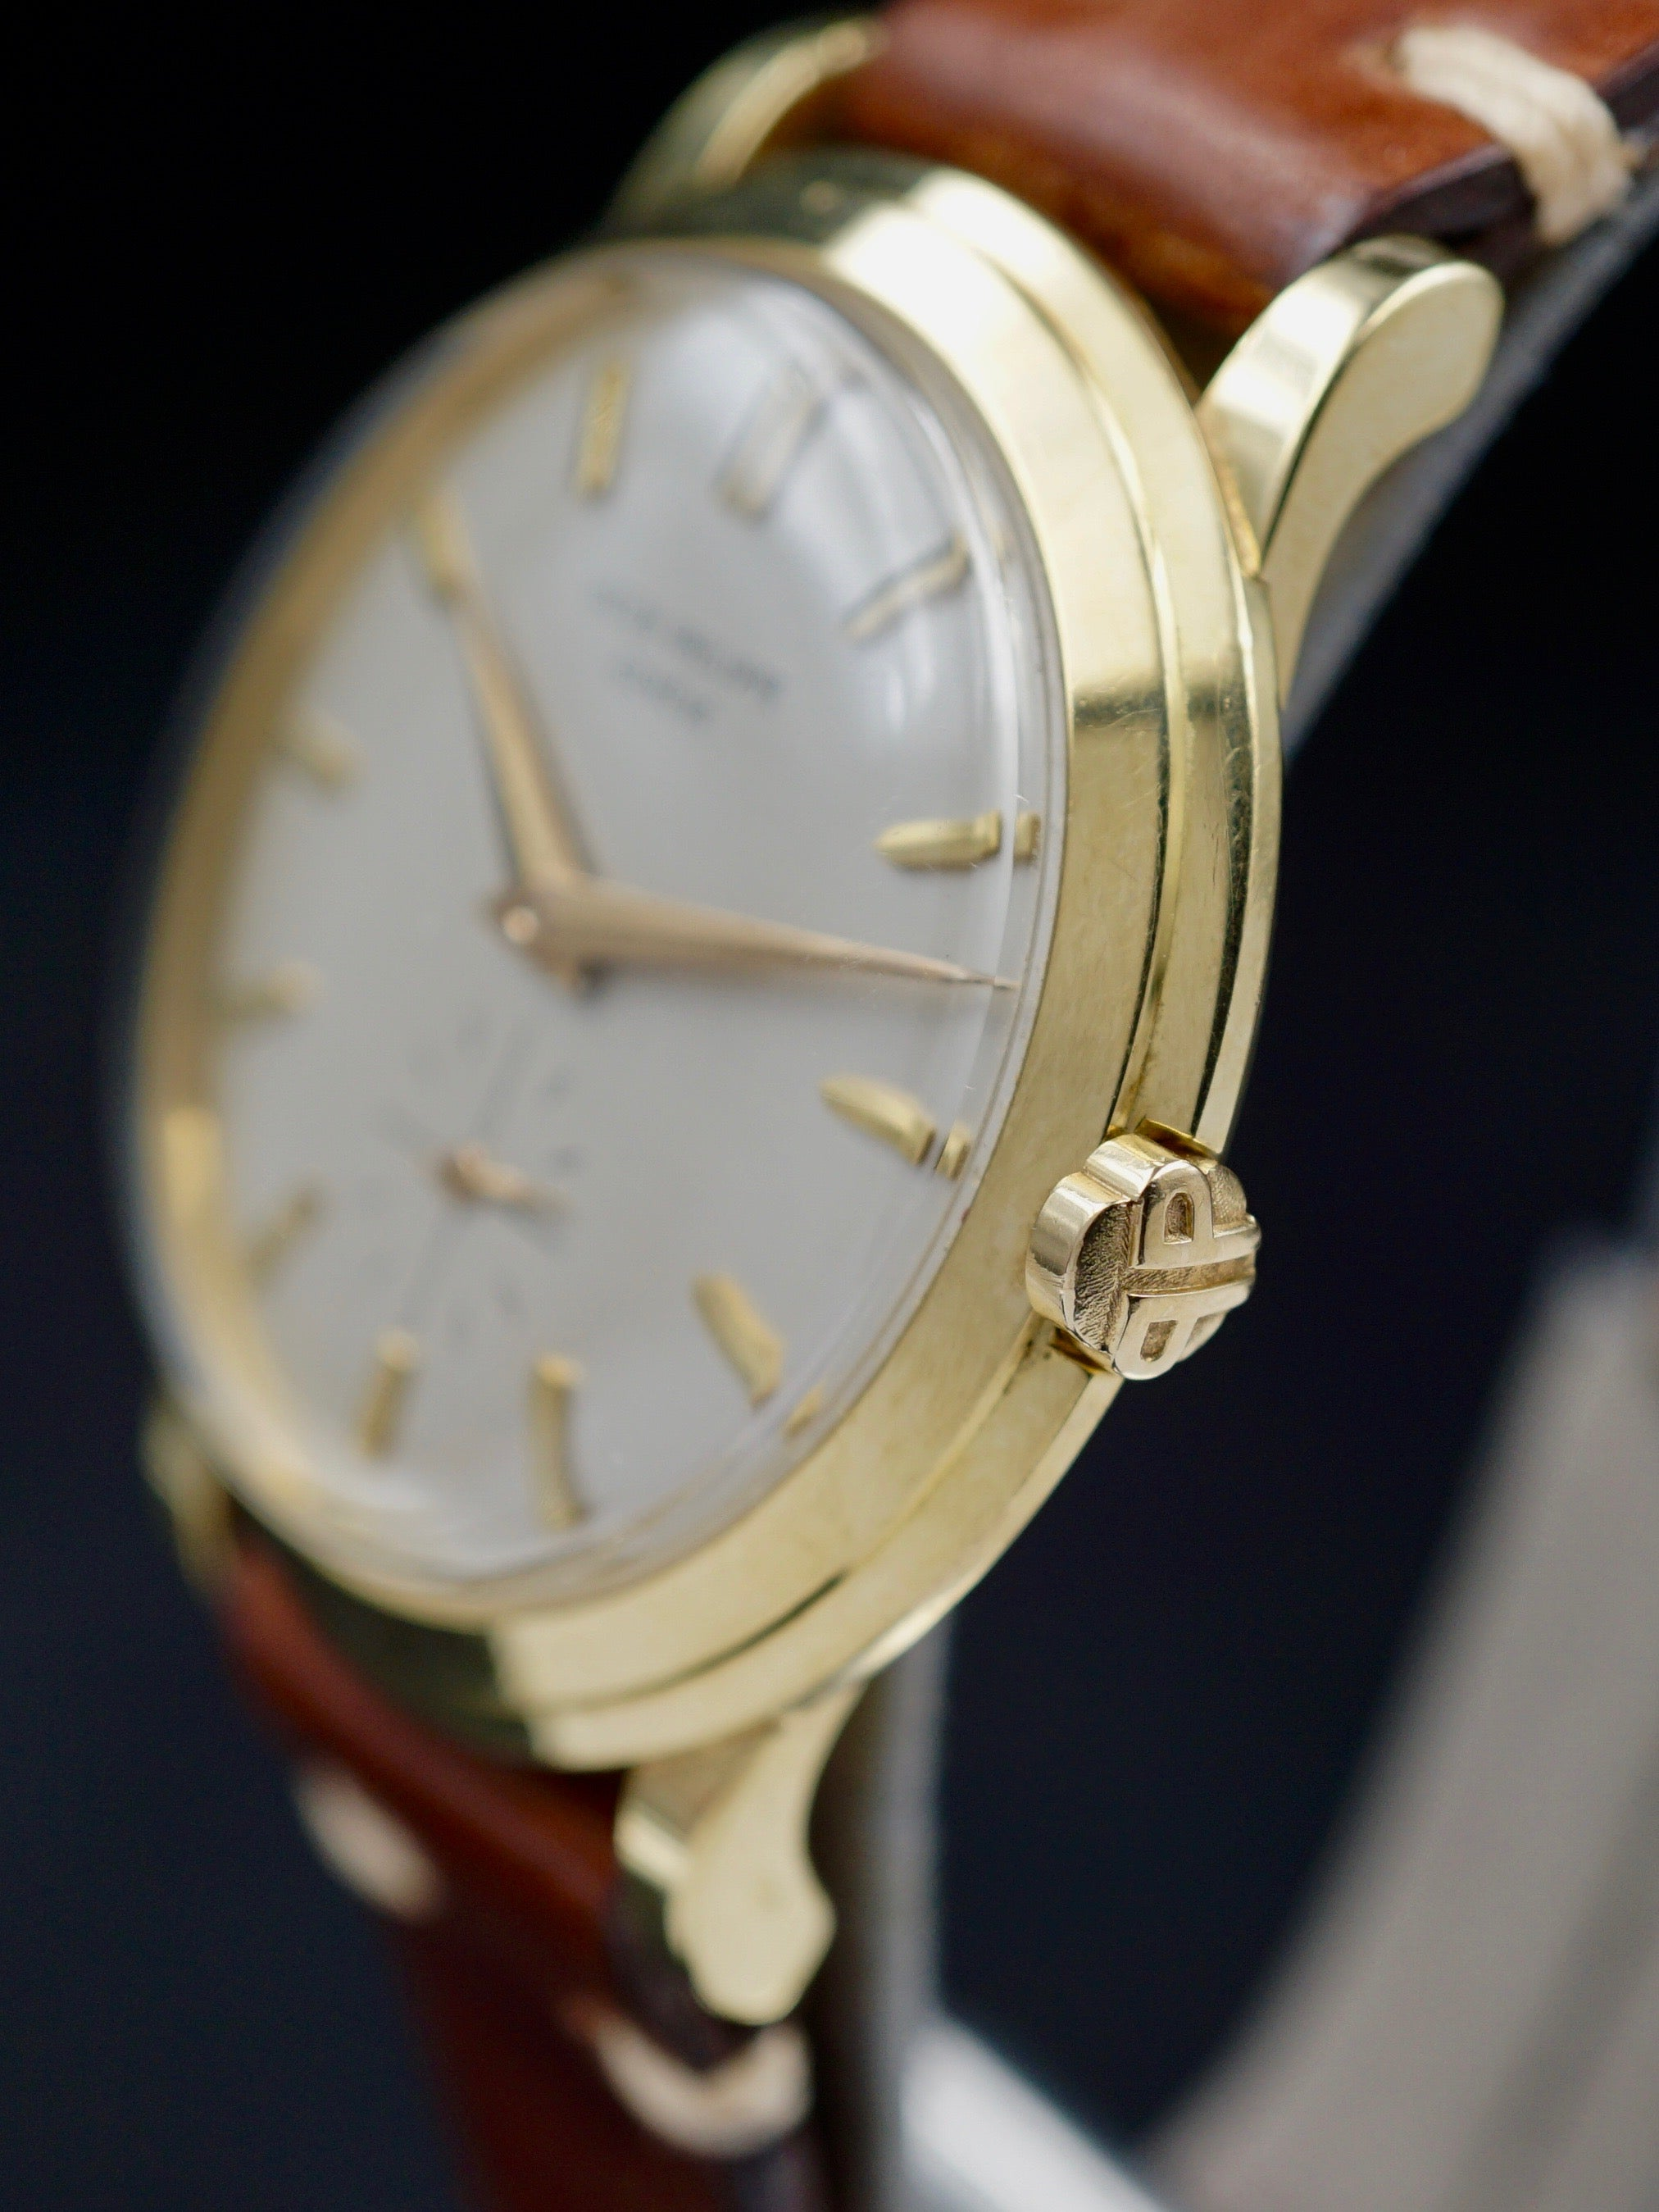 1955 Patek Philippe Ref. 2552 18k Yellow Gold